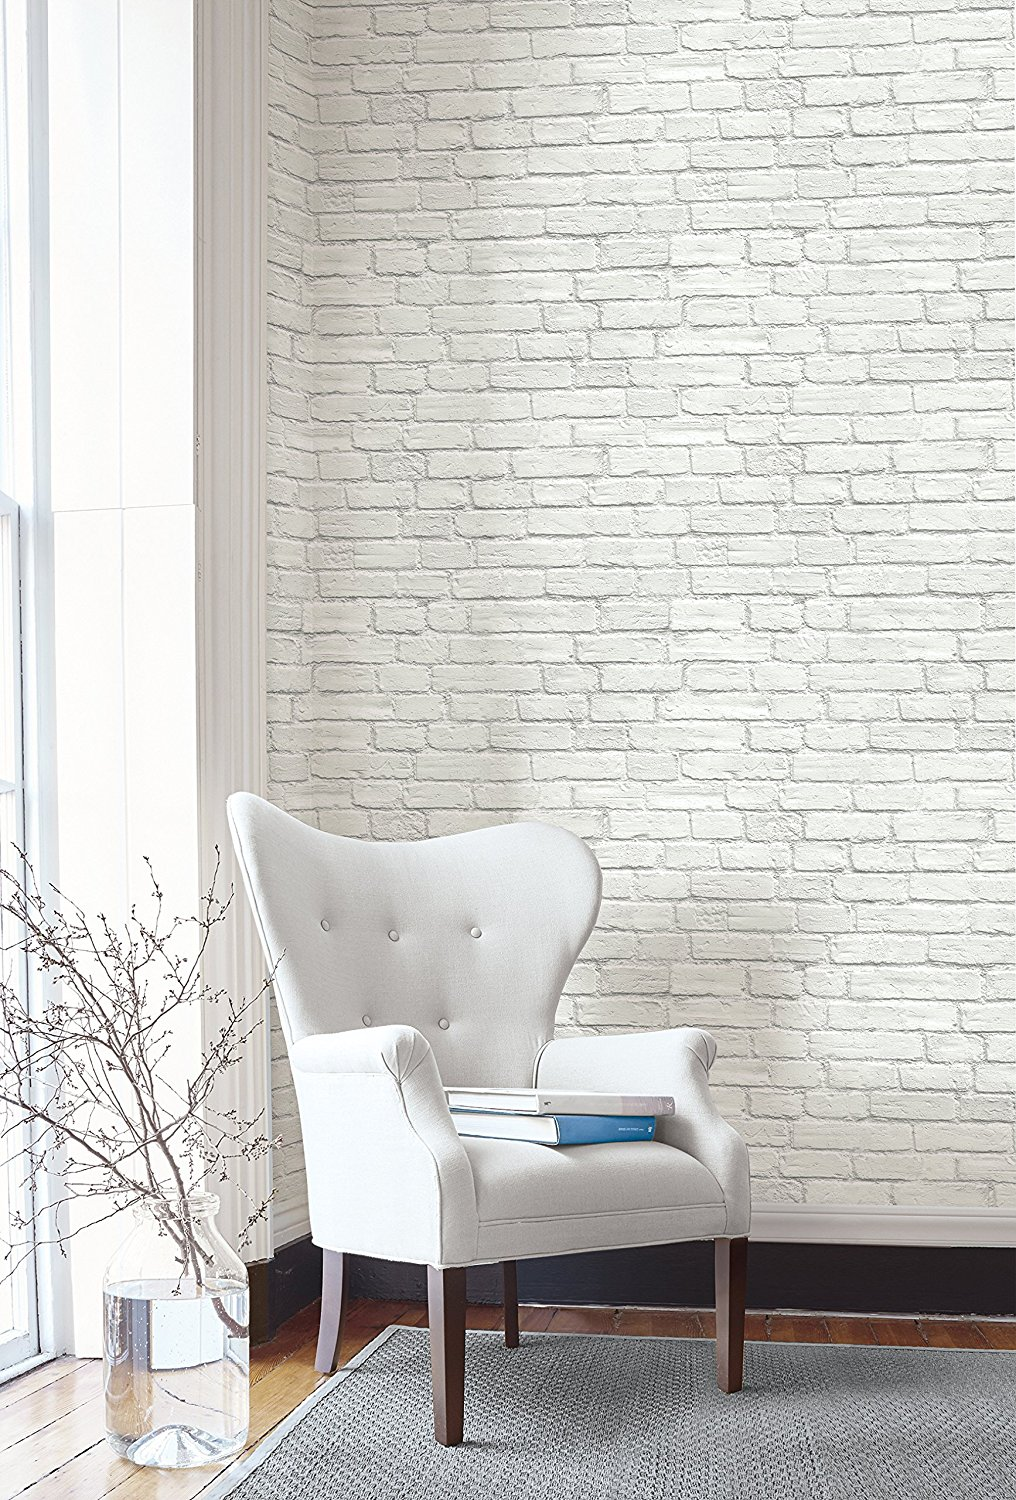 Faux Brick Wallpaper and 8 Other Ways To Update Your Home On A Budget. I was looking for unique and fun ways to spruce up my home, either with accents, plants, or wallpaper. these are some budget-friendly ways to make a room come to life. #homedecor #home #homeinspo